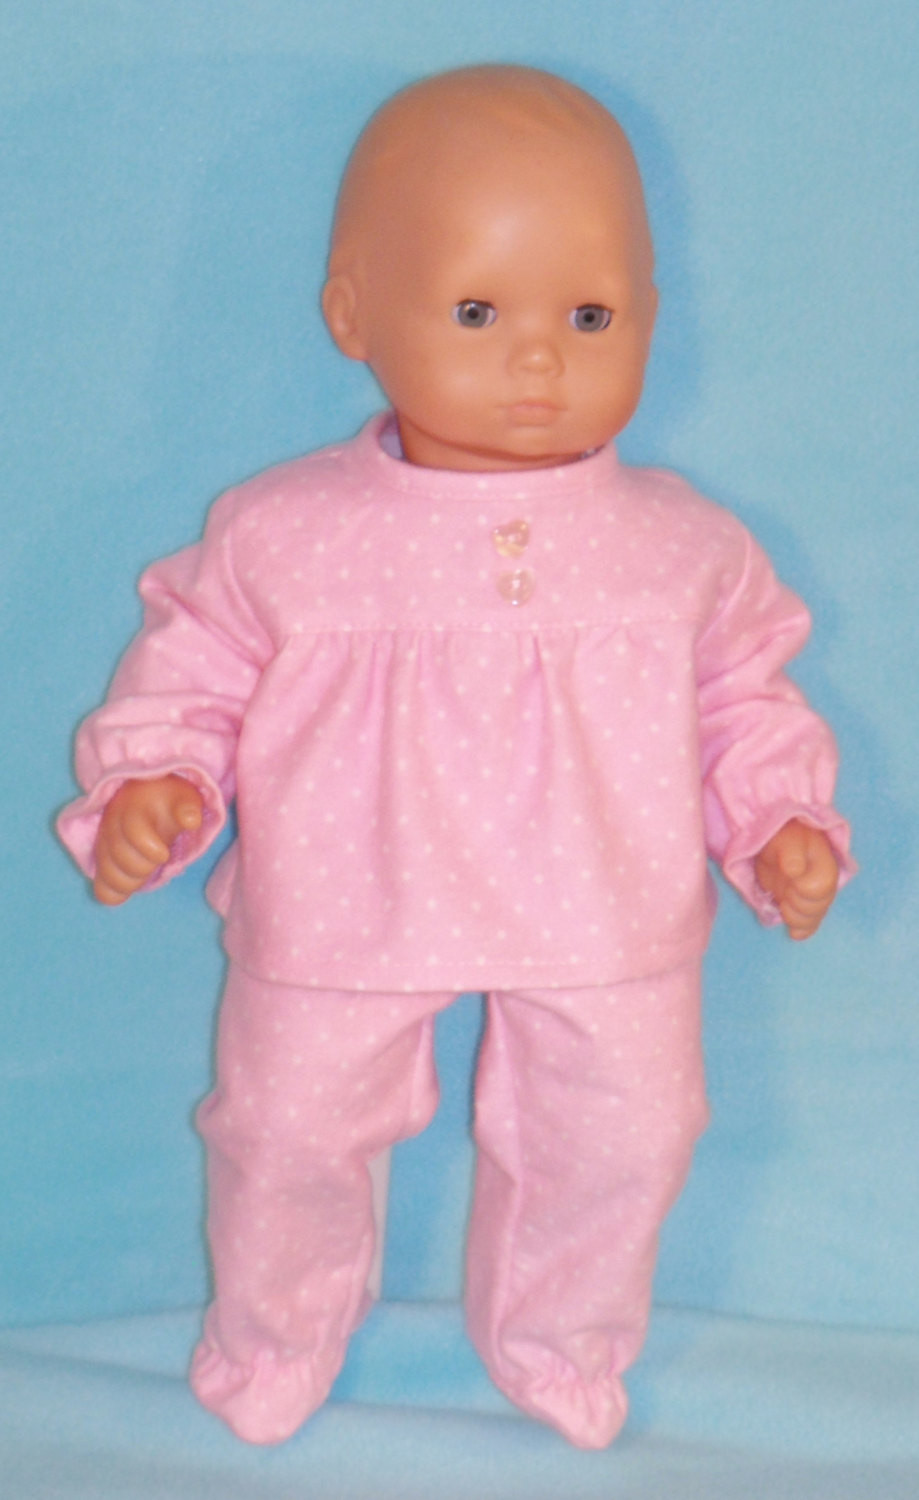 Best Of Bitty Baby Doll Pink Pajamas with Feet Baby Pajamas with Feet Of Delightful 40 Photos Baby Pajamas with Feet